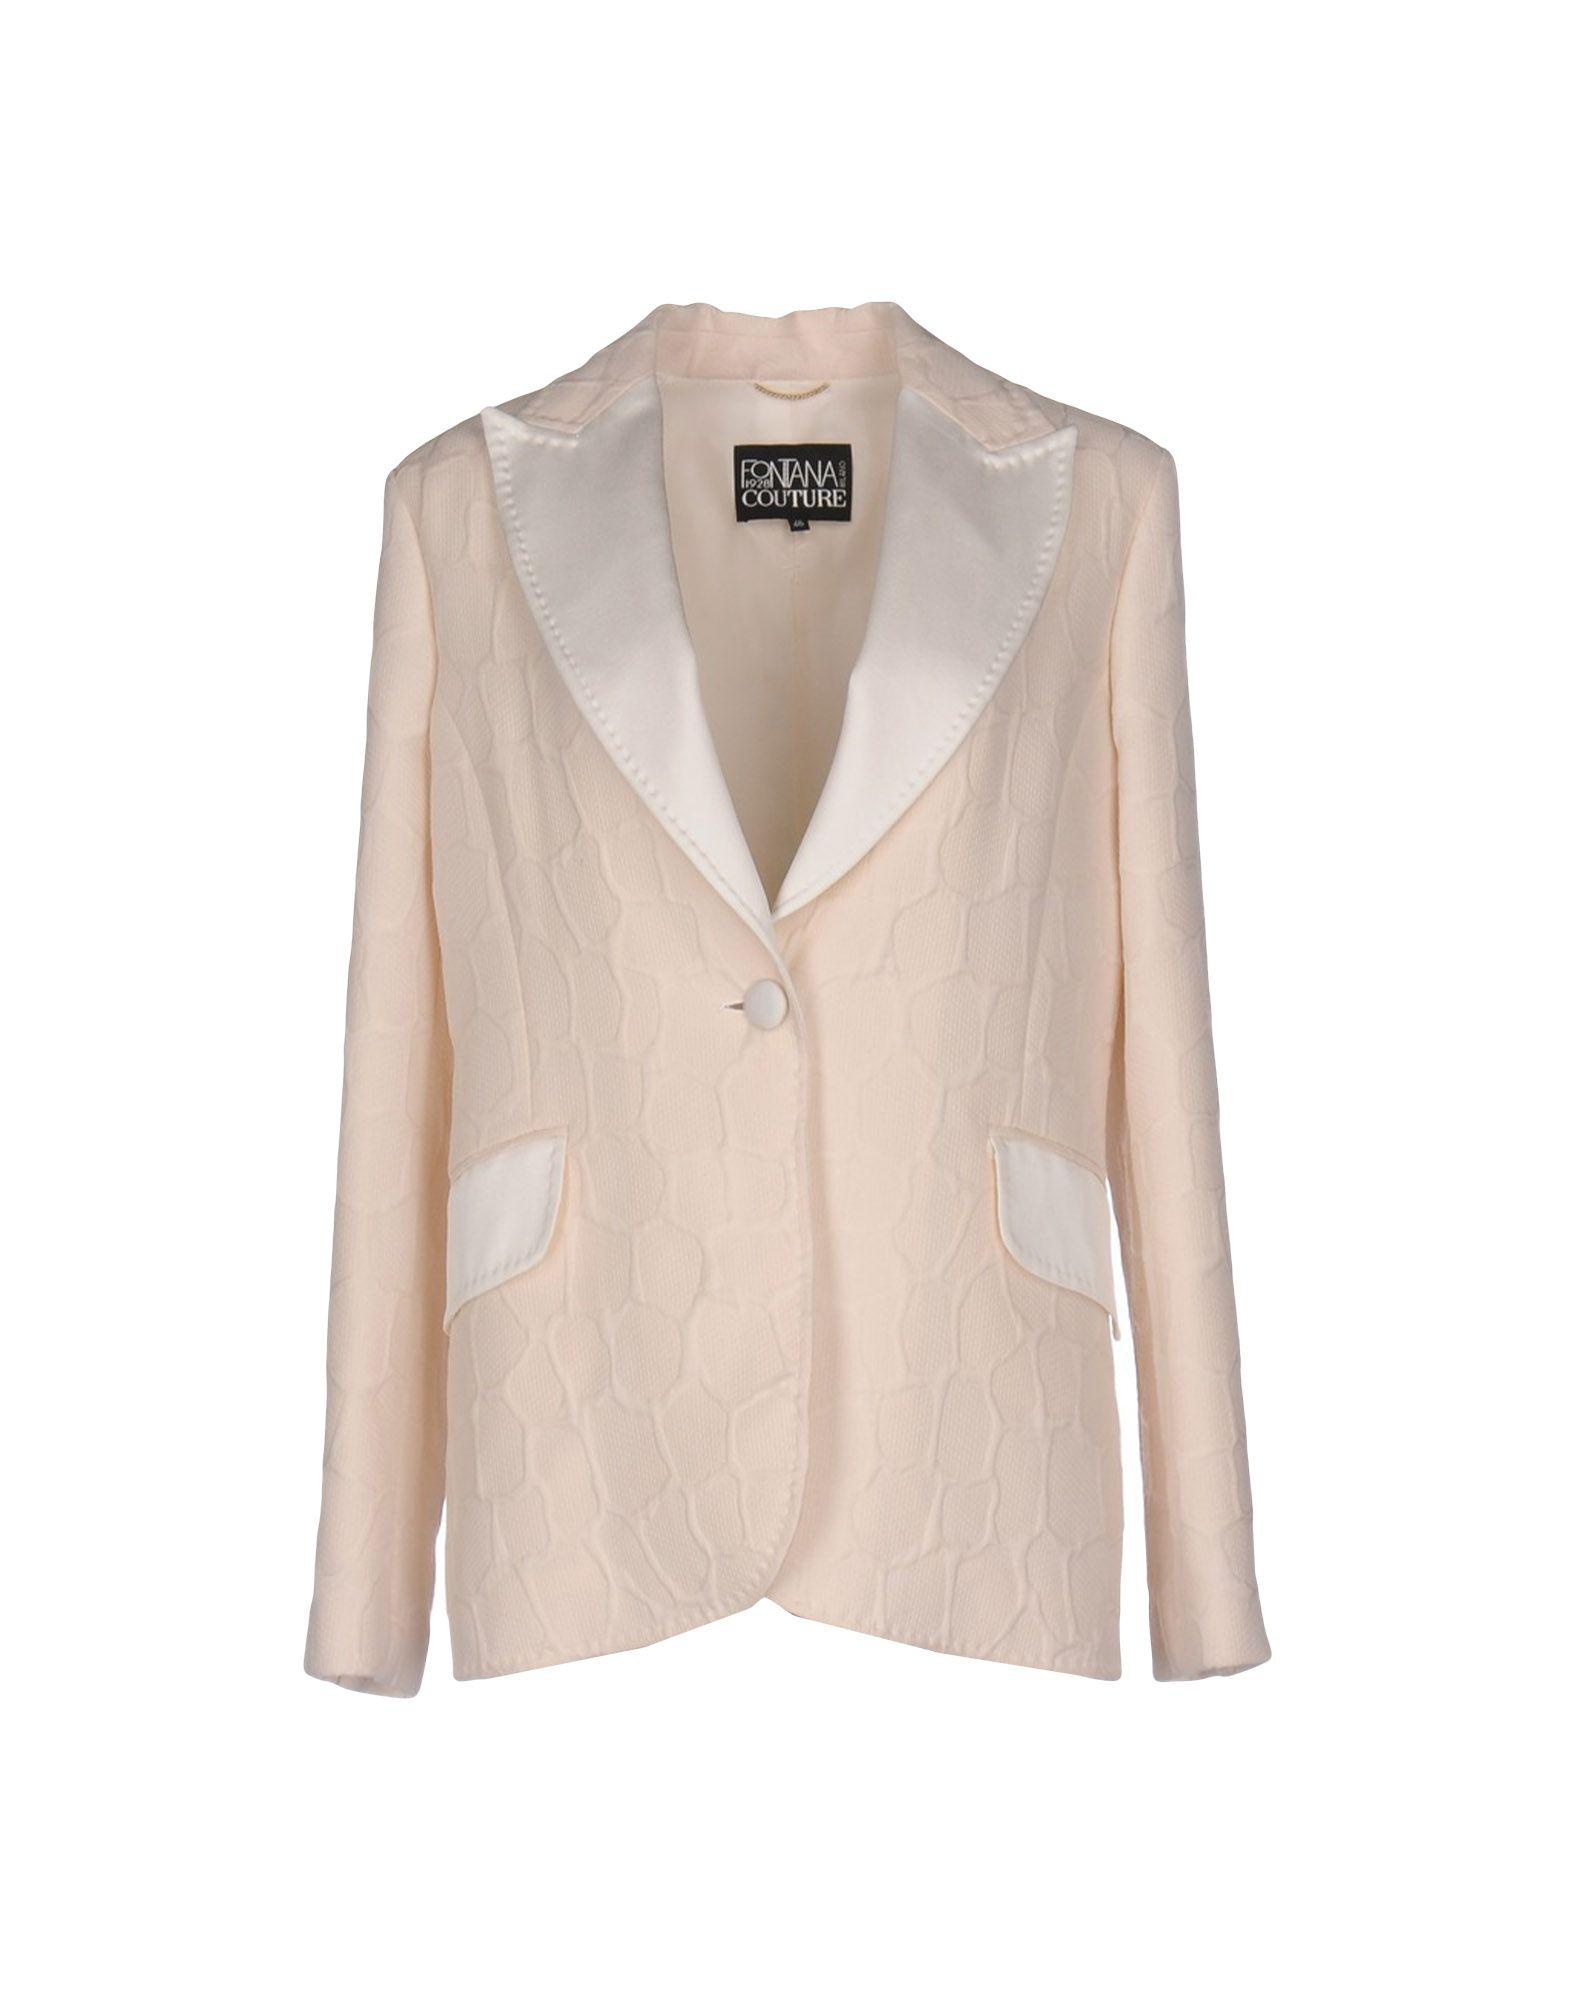 SUITS AND JACKETS - Blazers Fontana Couture Newest Sale Online In China Cheap Price k2oUC